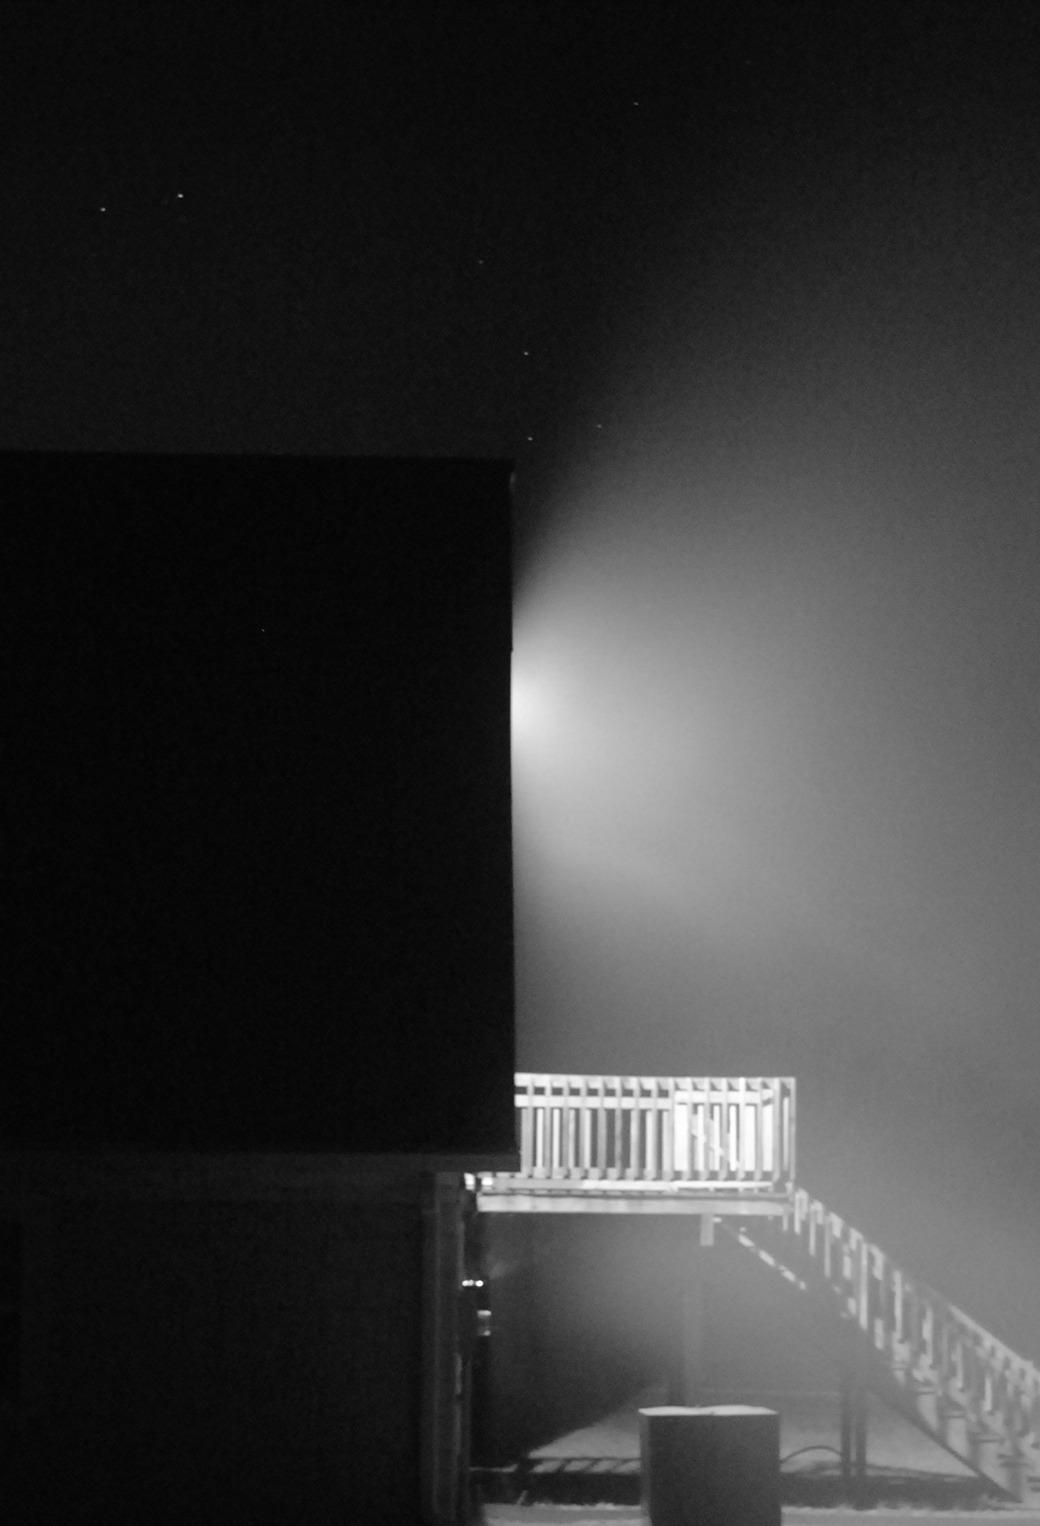 Black White Foggy Night 3Wallpapers iPhone Parallax Black & White Foggy Night